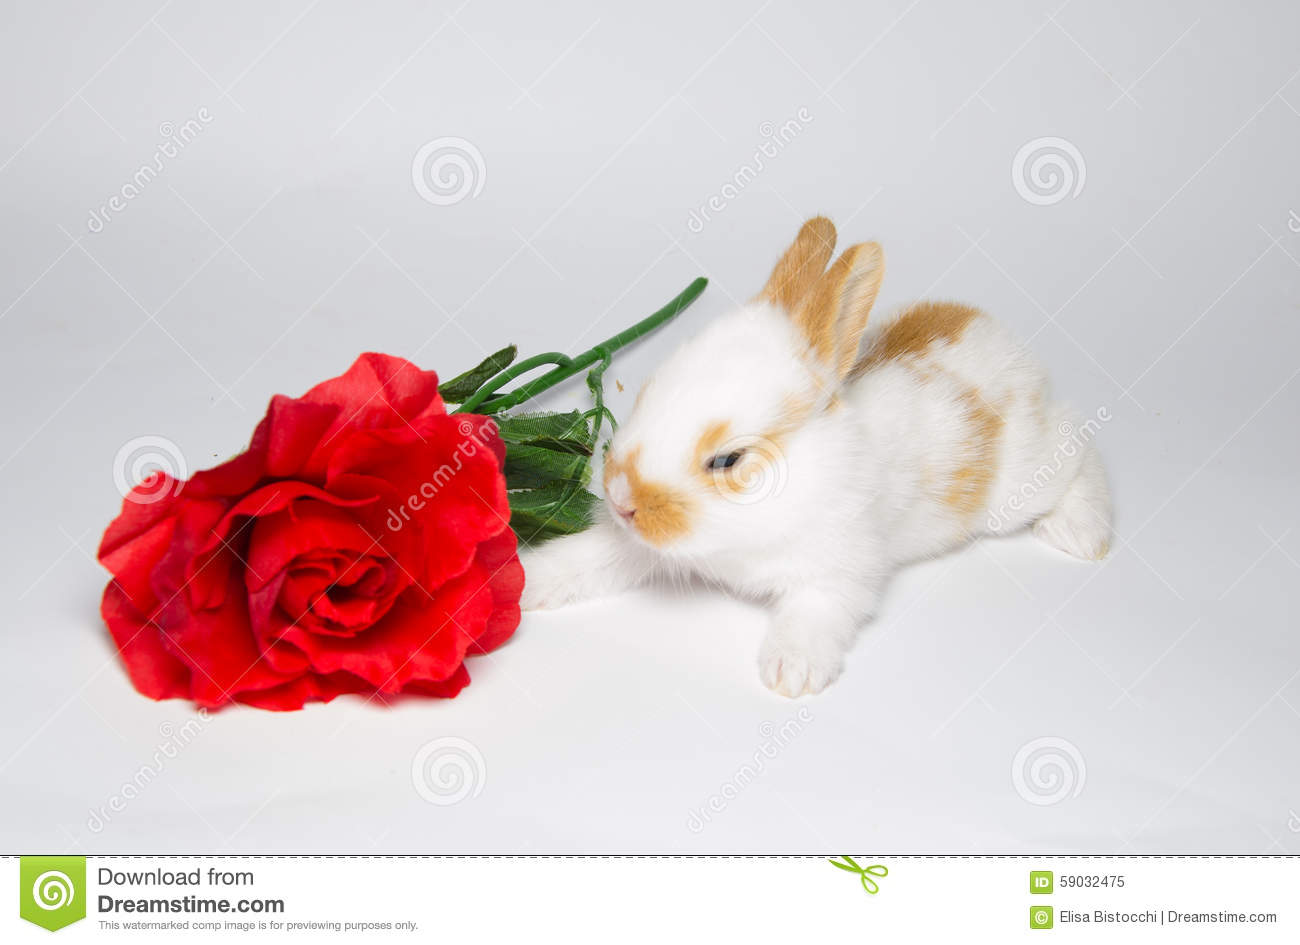 Sweet little bunny with rose